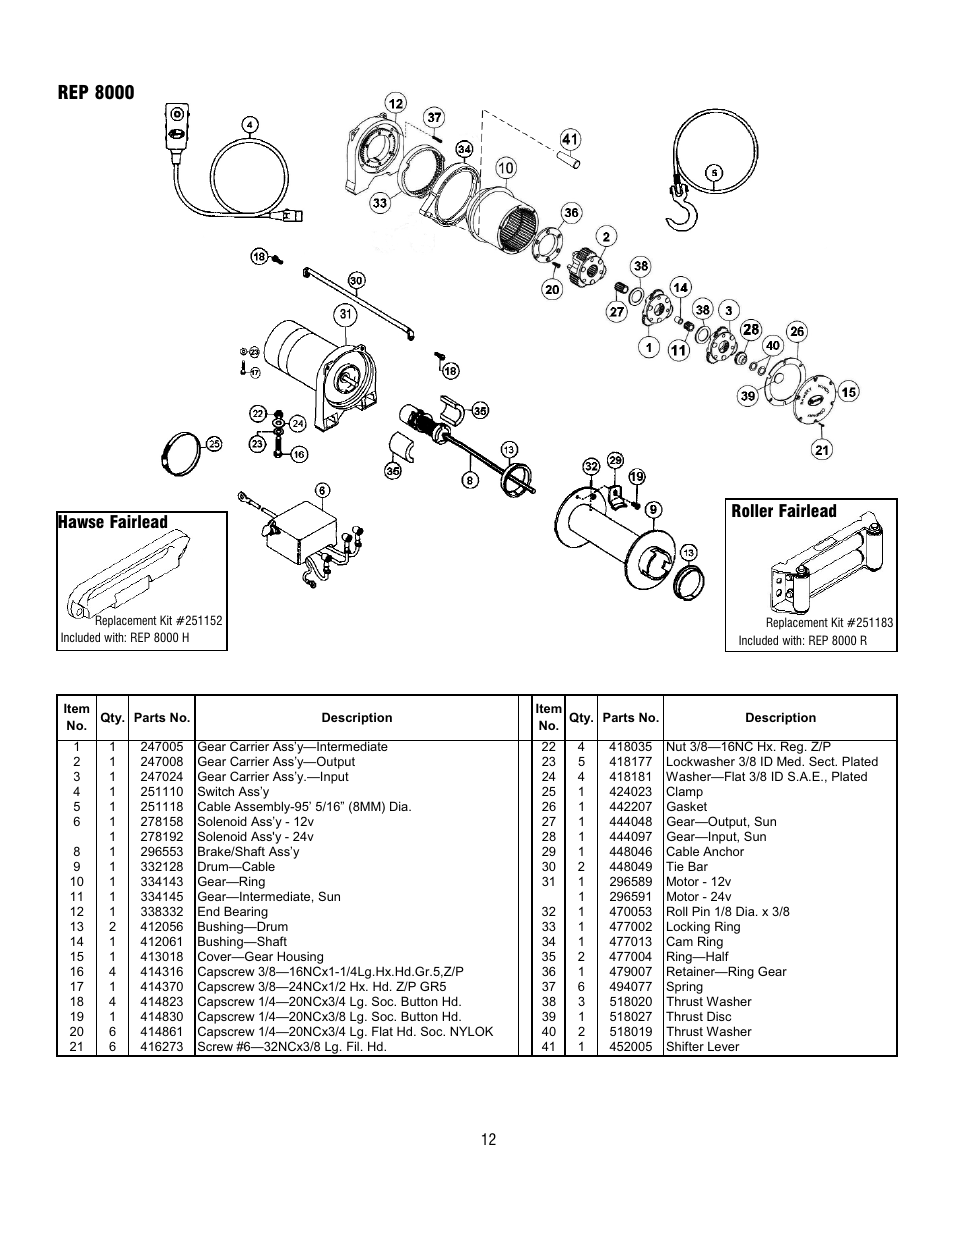 winch parts diagram with Ramsey Rep8000 Winch Wiring Diagram on Mile Marker Winch Solenoid Parts Wiring Diagrams further Bbq075 further 3000 Warn Winch Wiring Diagram further Cranebasics as well 7758 Warn 2 5 Winch Teardown.